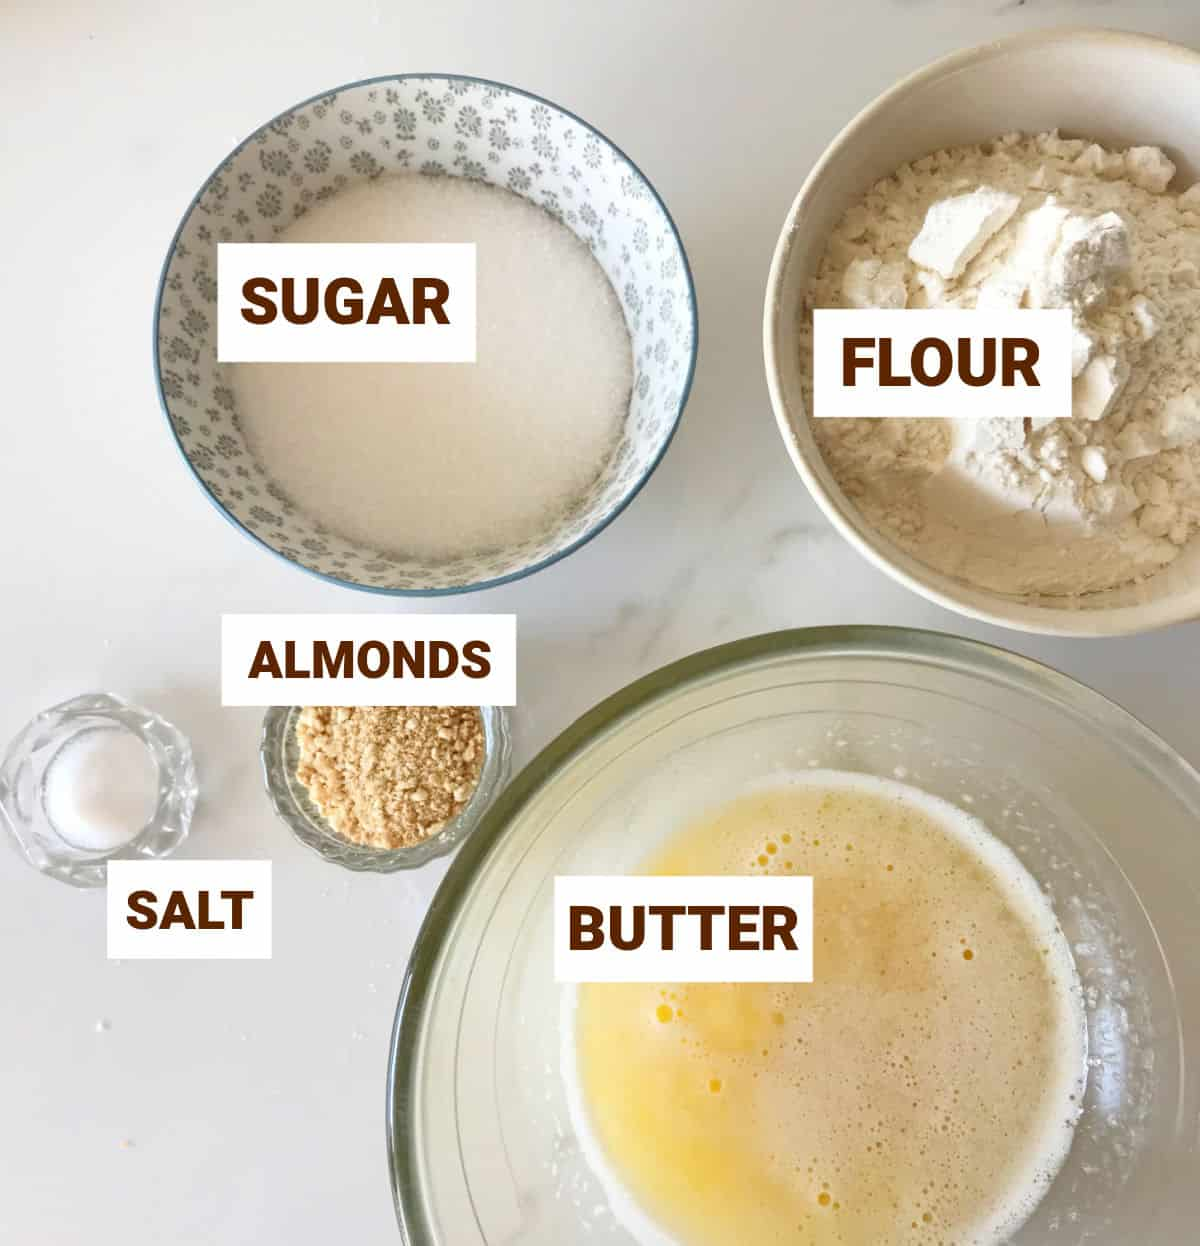 White surface with bowls containing ingredients for pie crust including almonds, salt, butter